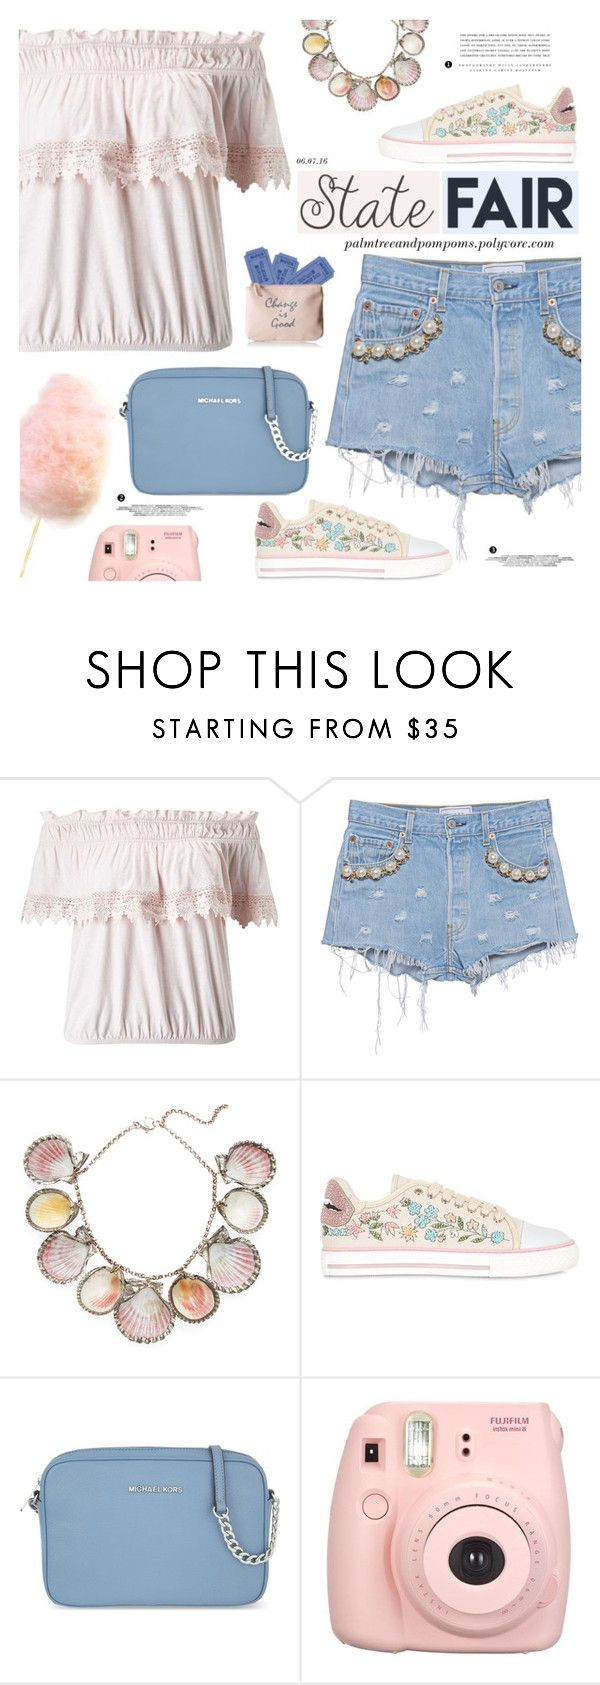 """""""Summer Date: The State Fair"""" by palmtreesandpompoms ❤ liked on Polyvore featuring Miss Selfridge, Forte Couture, Paolo Costagli, RED Valentino, MICHAEL Michael Kors, Kerr®, Lulu Guinness, MissSelfridge, statefair and summerdate"""